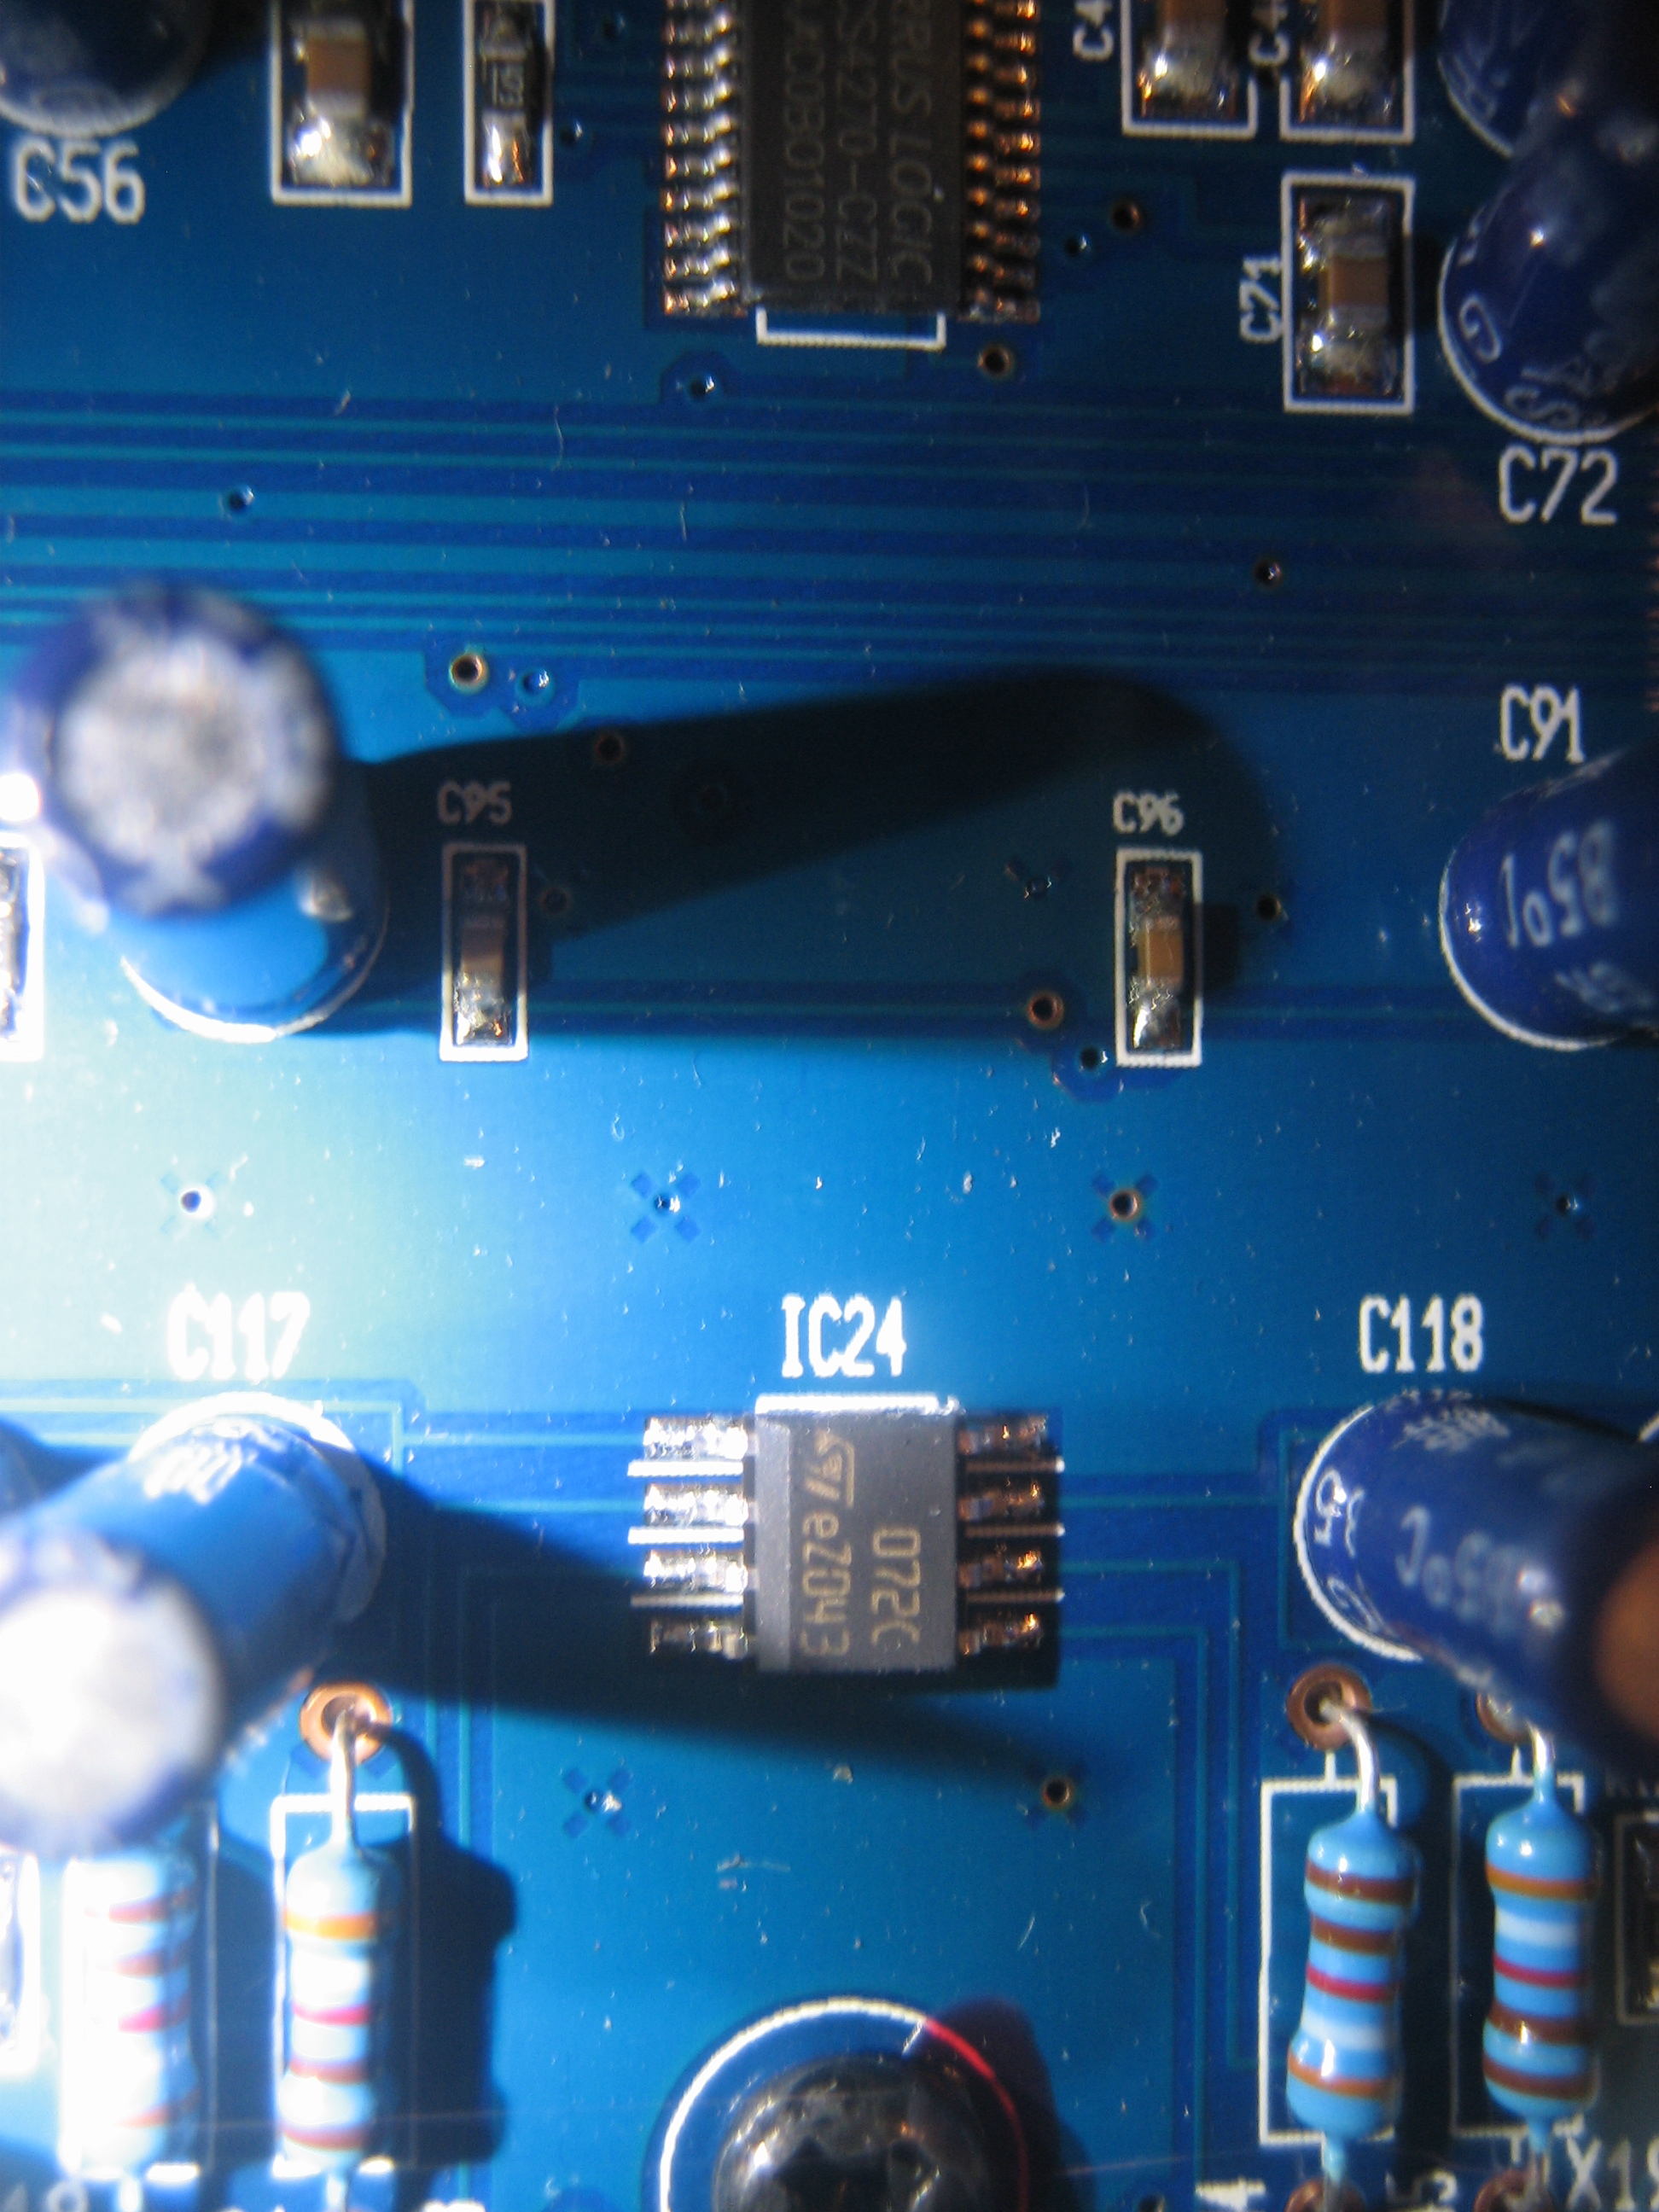 Upgrading Op Amps In Audio Equipment Texas Instruments Lm358 Dual Amp Dip Ic Design Kit 1410 Nightfire Electronics Theta Digital Legacy Product History